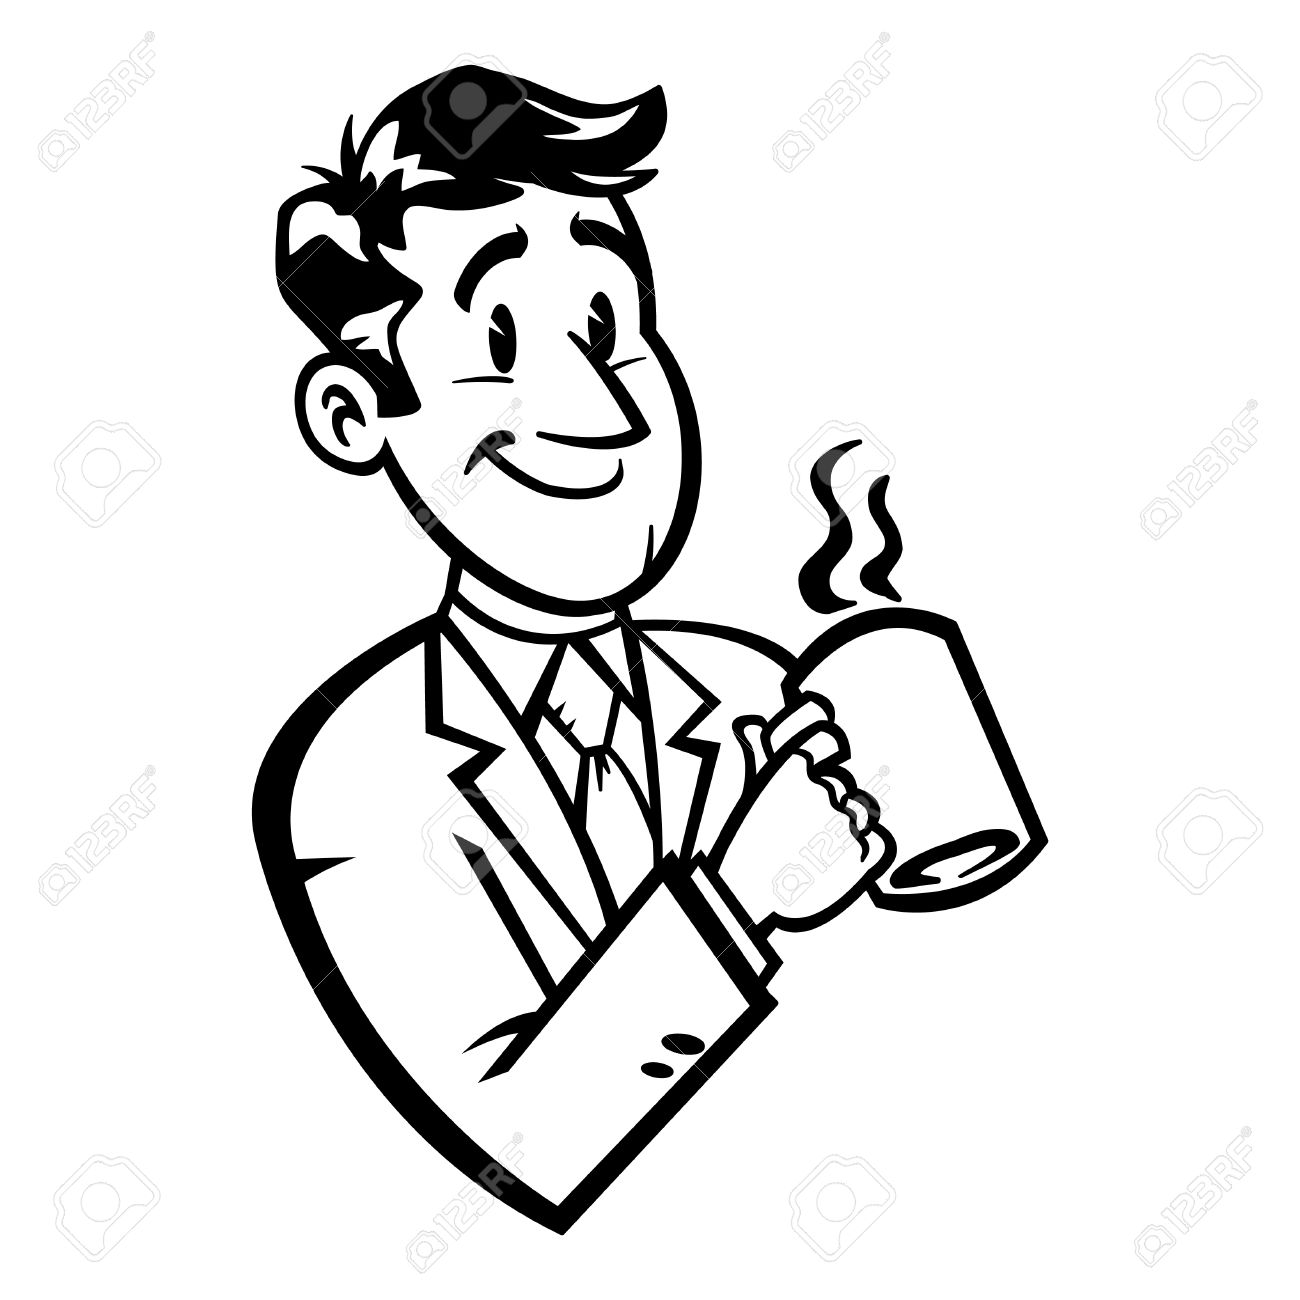 1300x1300 Business Man In Suit And Tie Drinking Coffee Vector Illustration